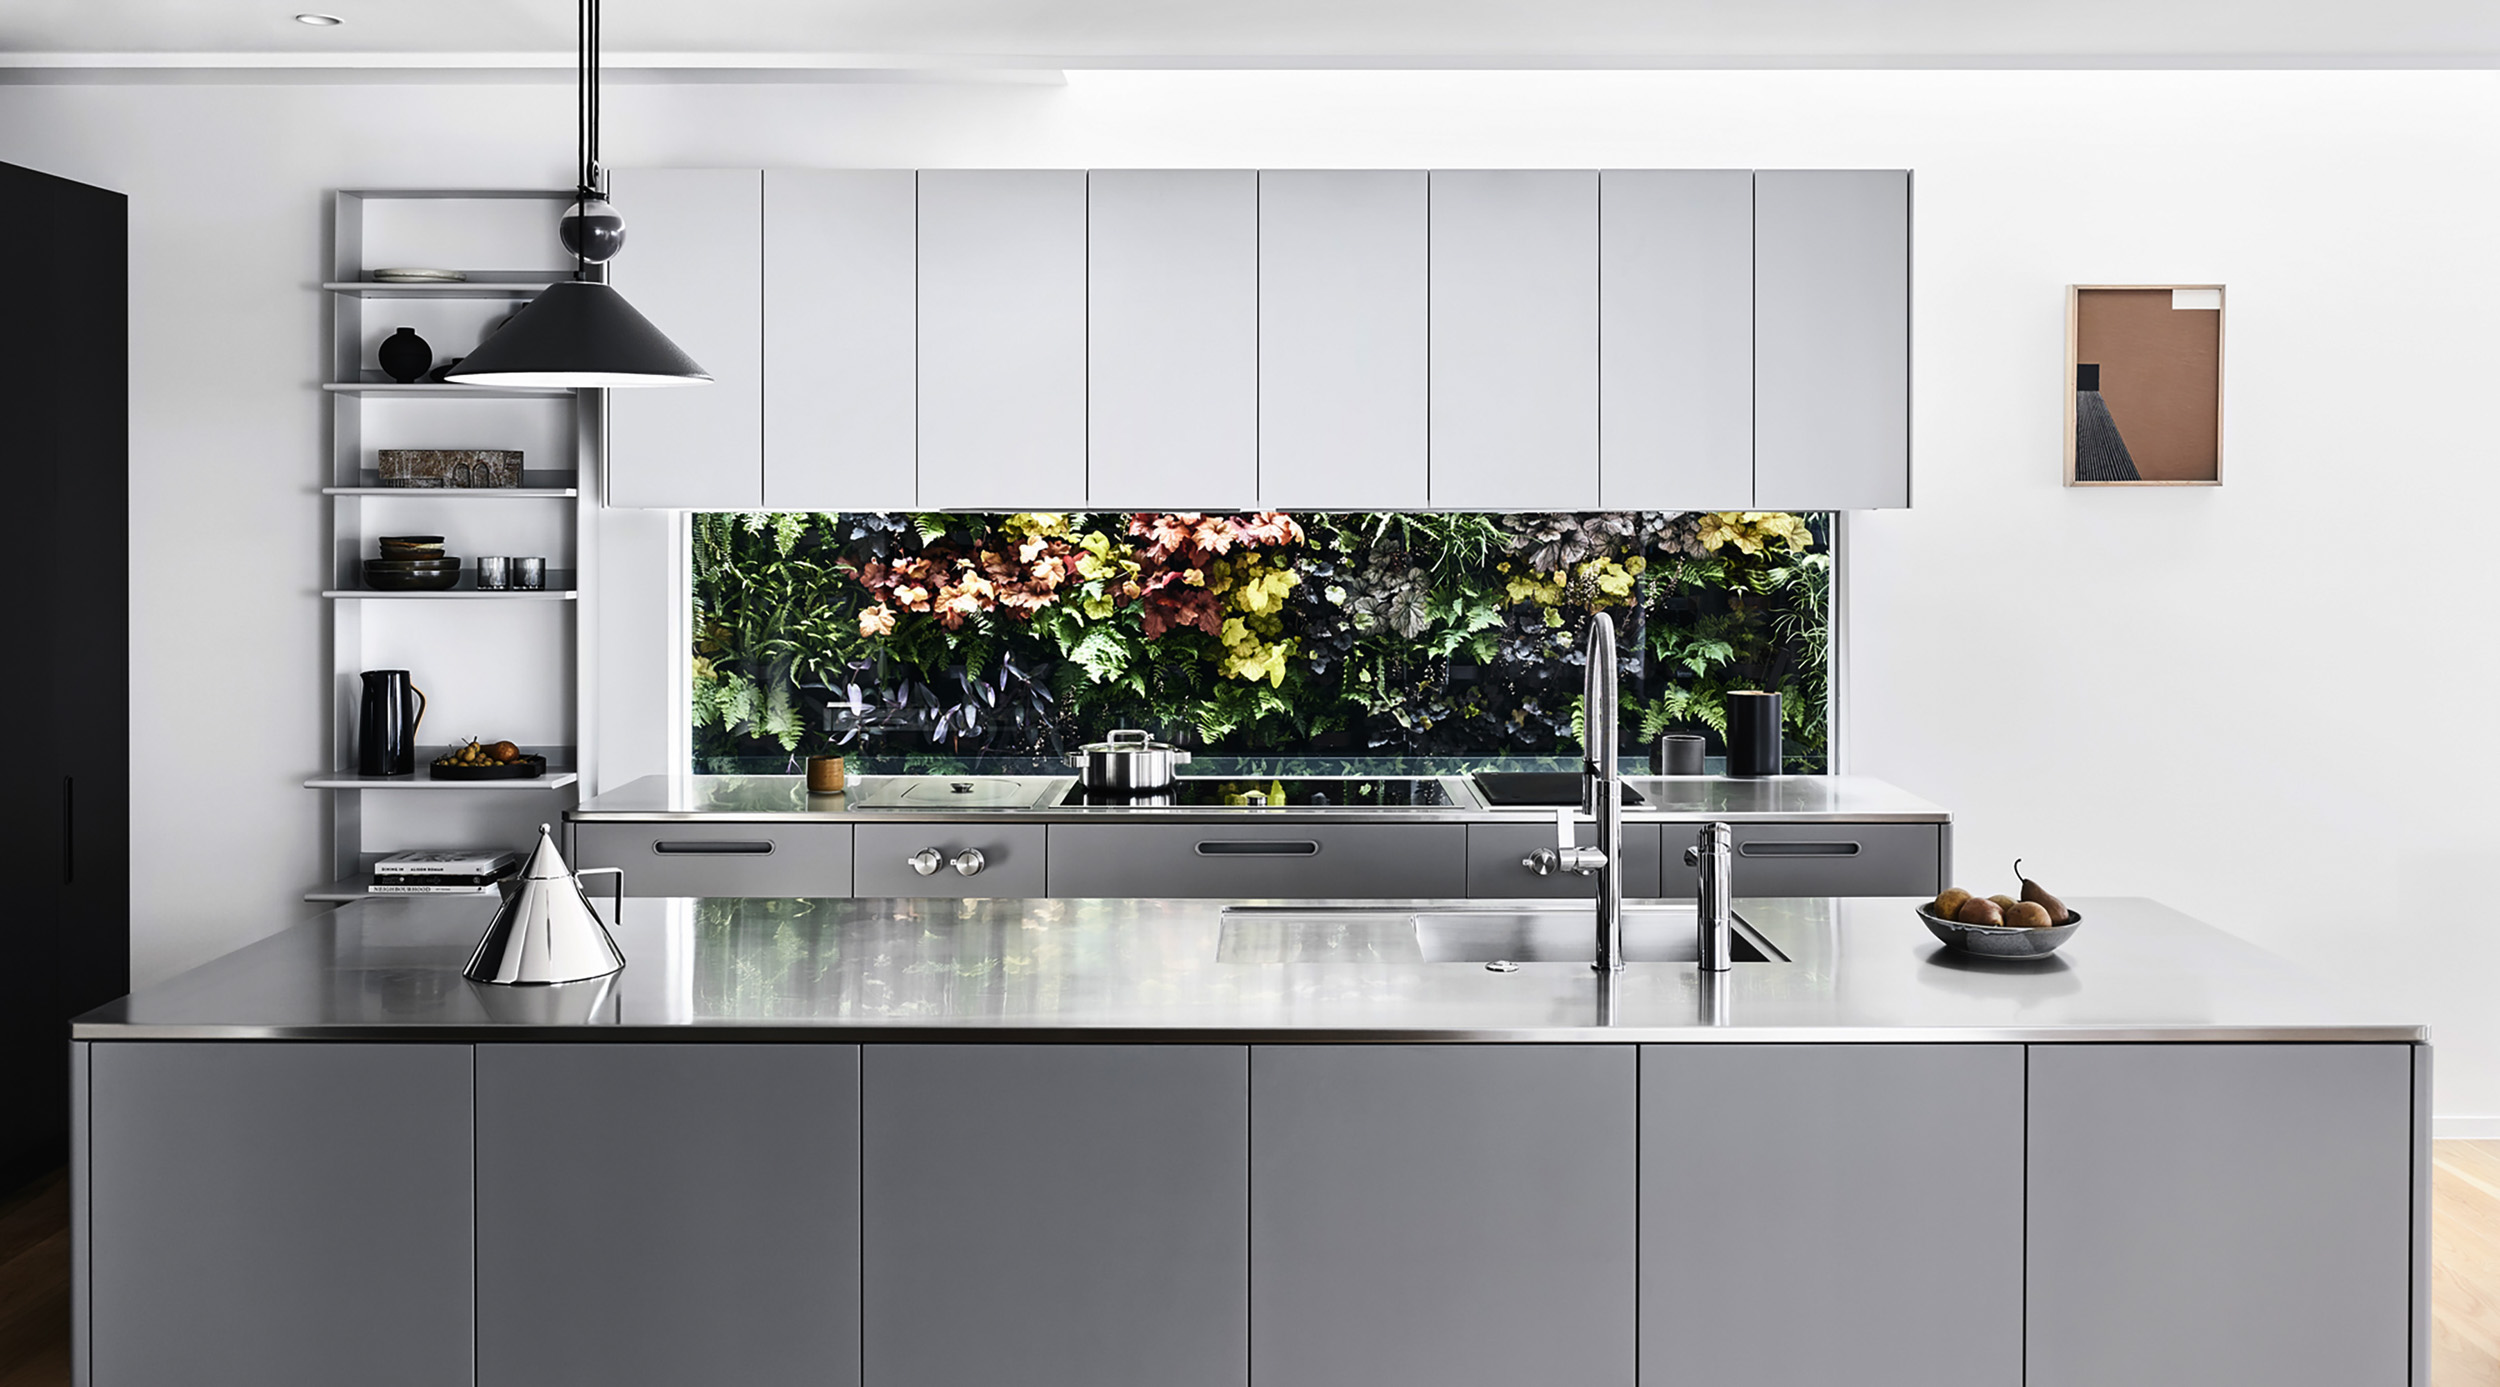 Tableau Kitchen System by Cantilever for Ross and Pauline Troon, Albert Park_2.JPG